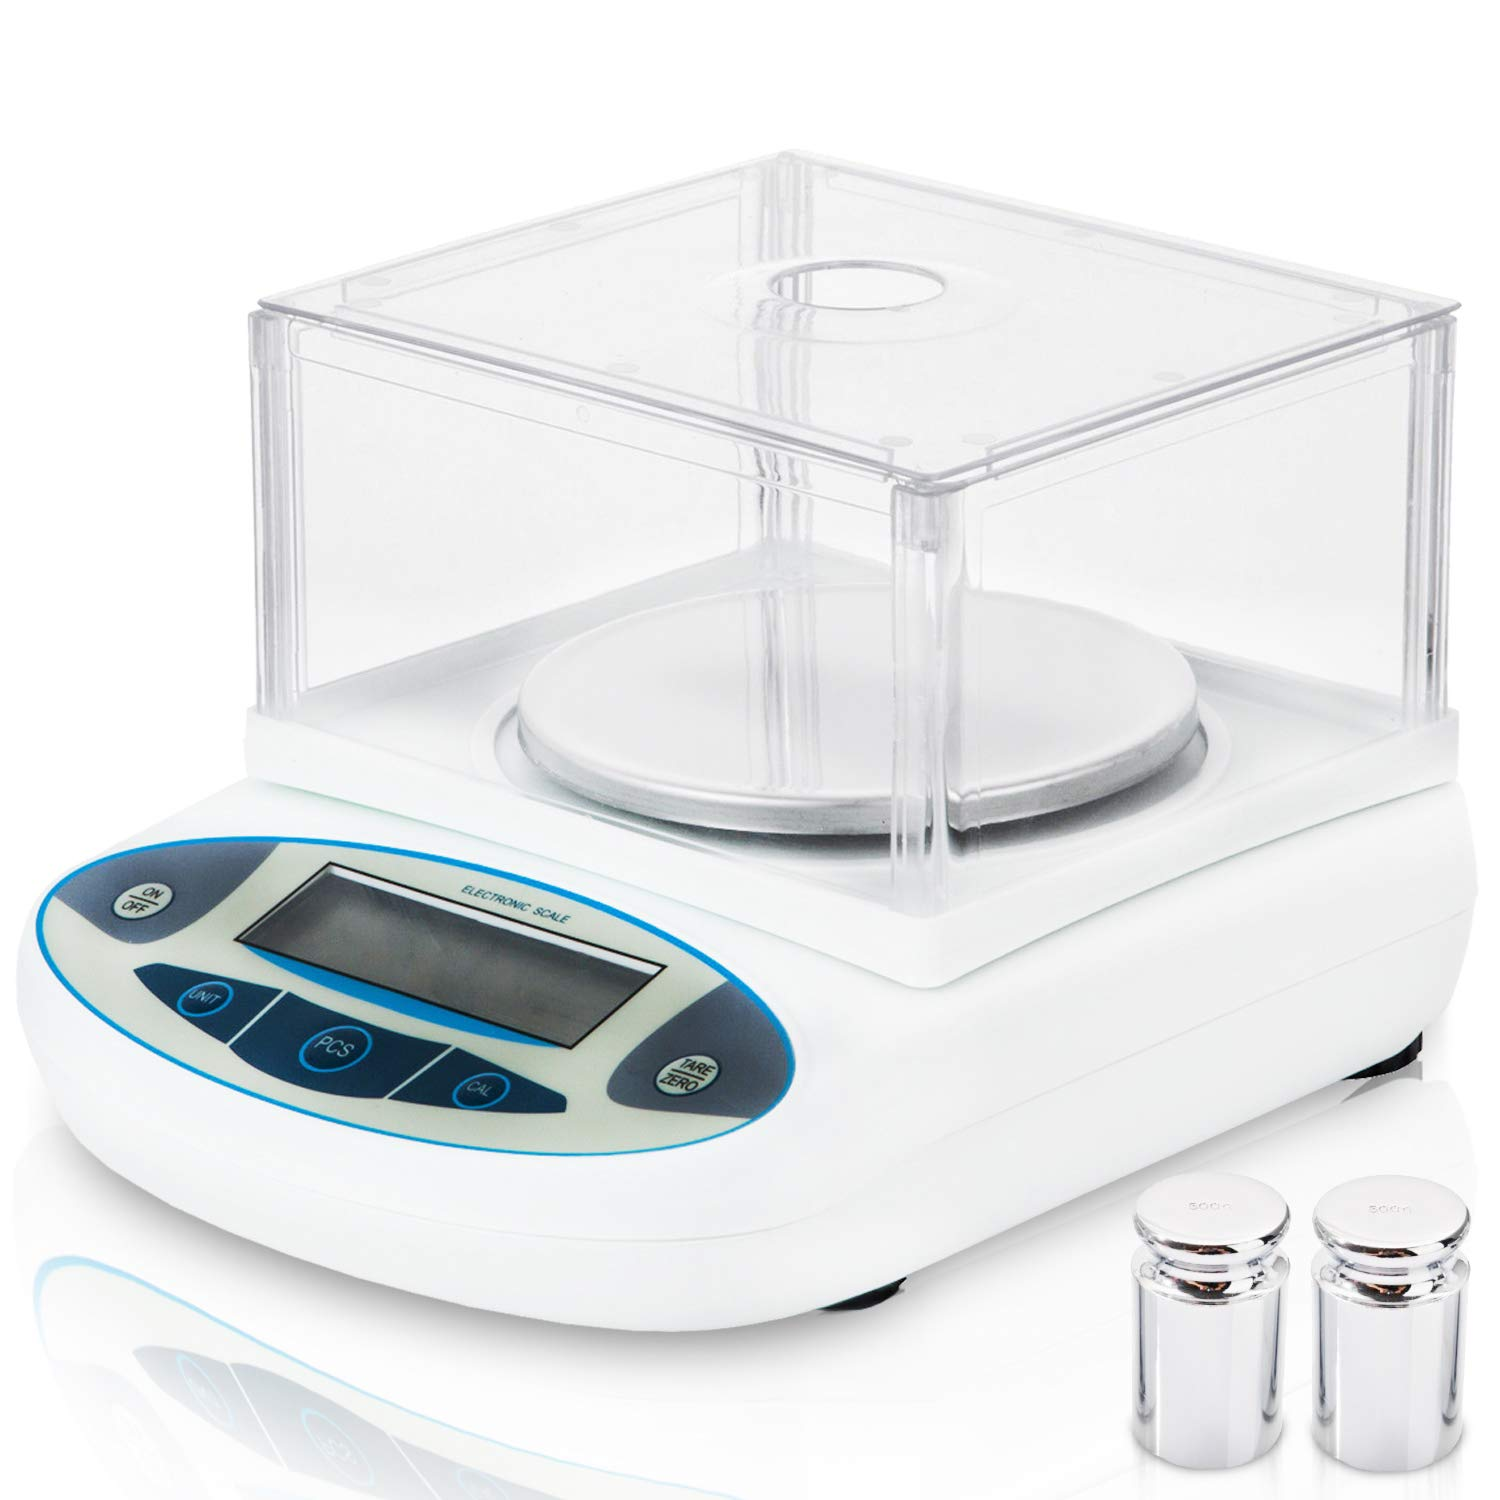 0160409c7a9c 3000g x 0.01g Lab Analytical Balance Scale, MOCCO 10 mg High Precision  Electronic Scientific Scale Accuracy Weighs Laboratory Instrument with 500g  ...